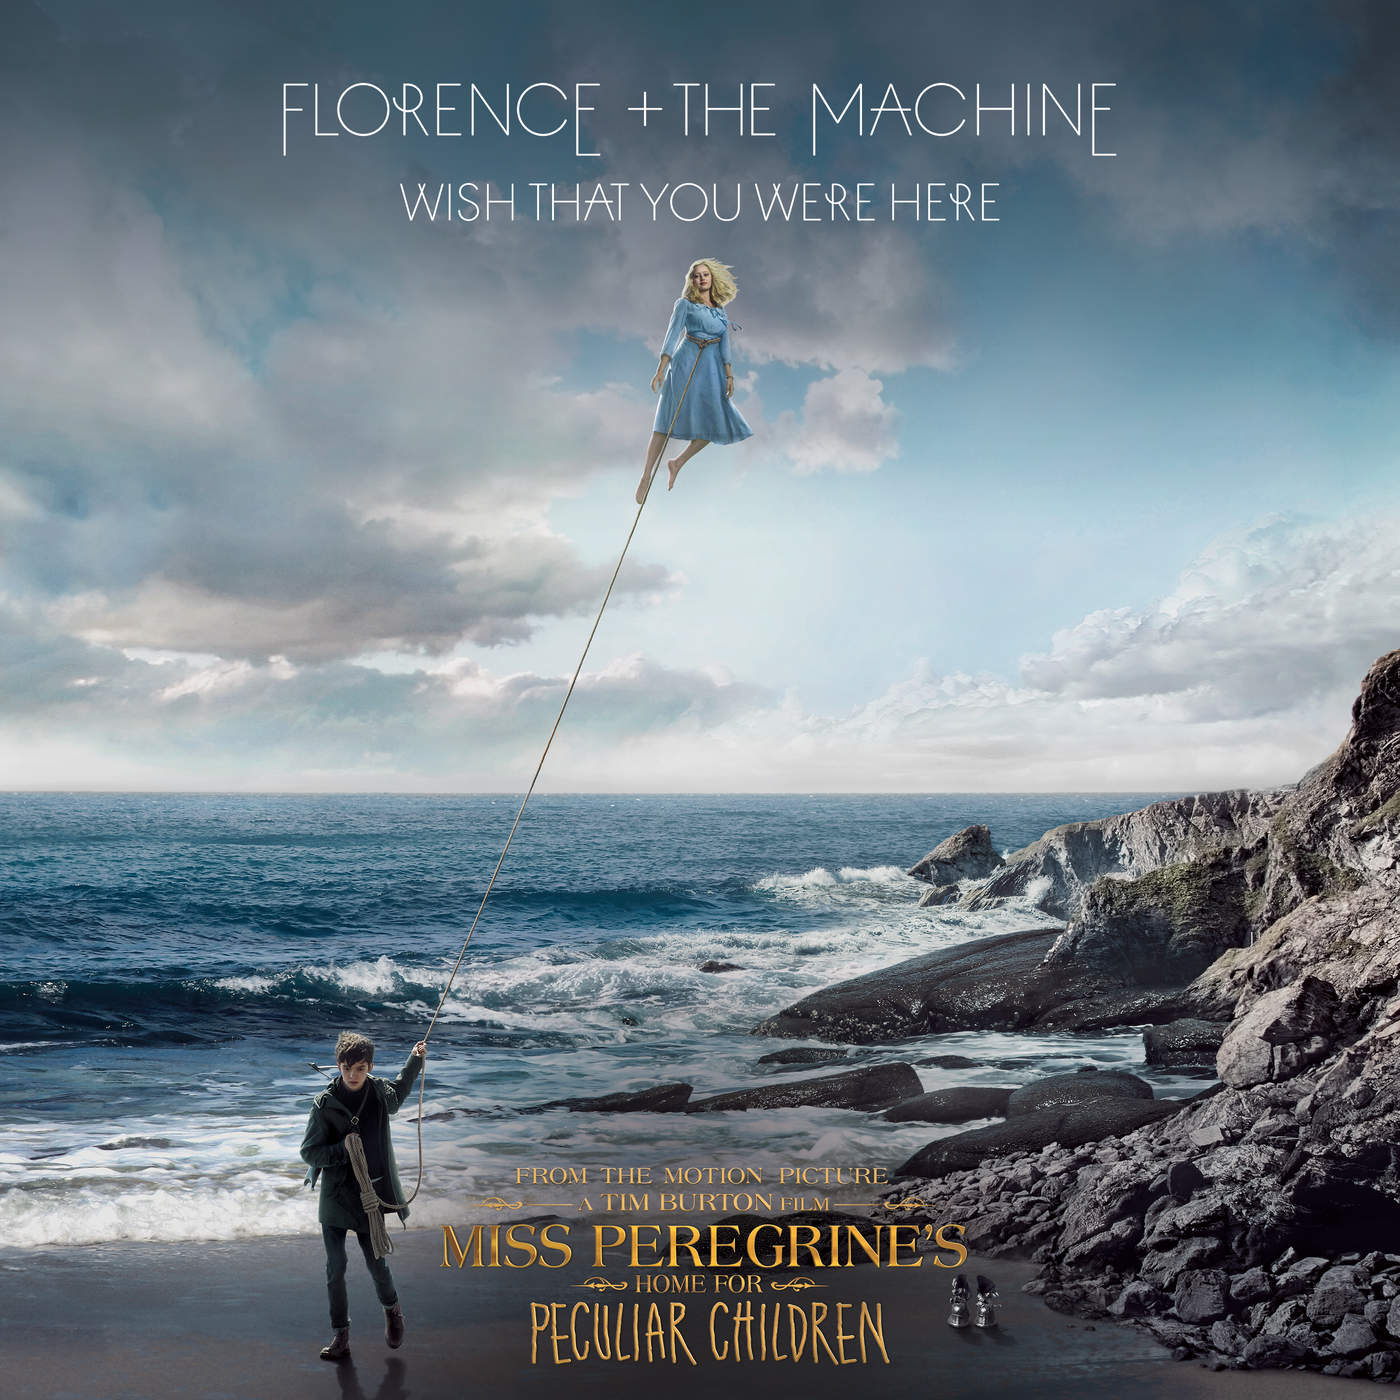 """Florence + The Machine - Wish That You Were Here (From """"Miss Peregrine's Home for Peculiar Children"""" Original Motion Picture Soundtrack) - Single Cover"""